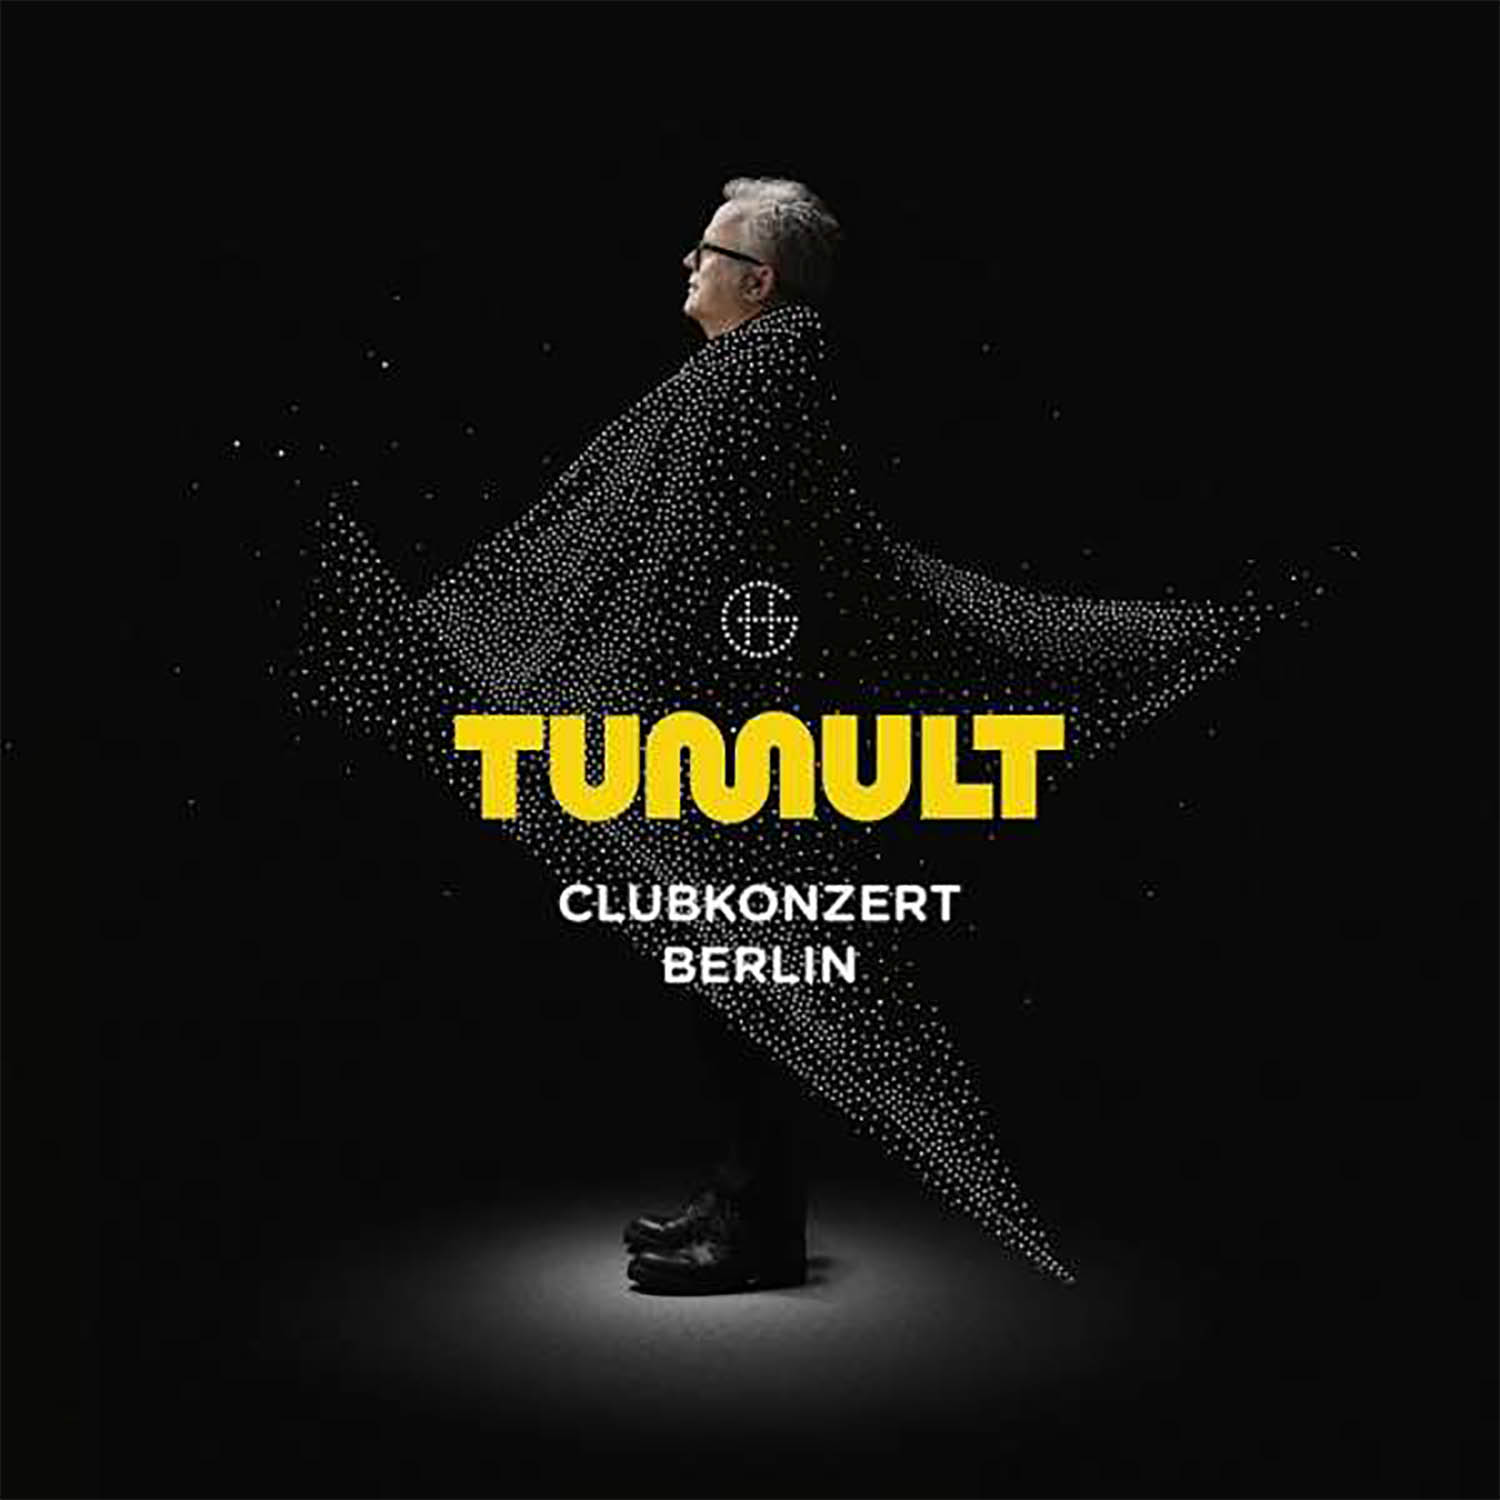 Grönemeyer Tumult - Clubkonzert Berlin CD/BluRay